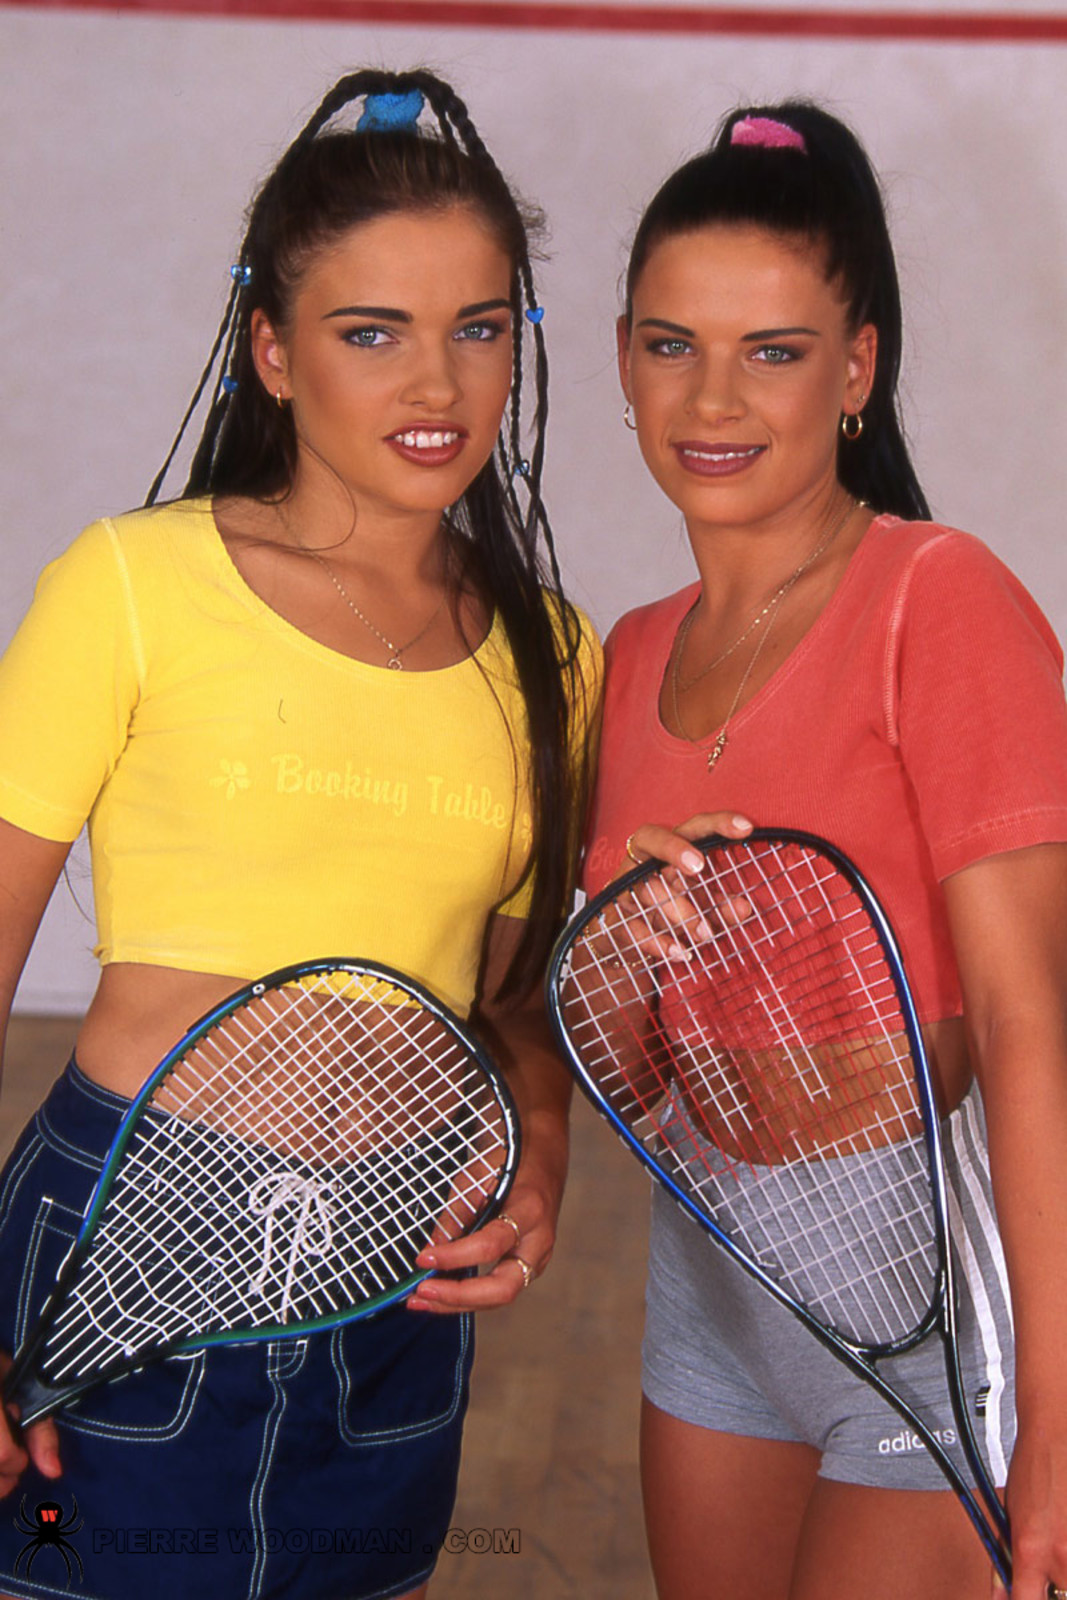 ines_and_inga_hard_set_squash_1-hq-1[1].jpg